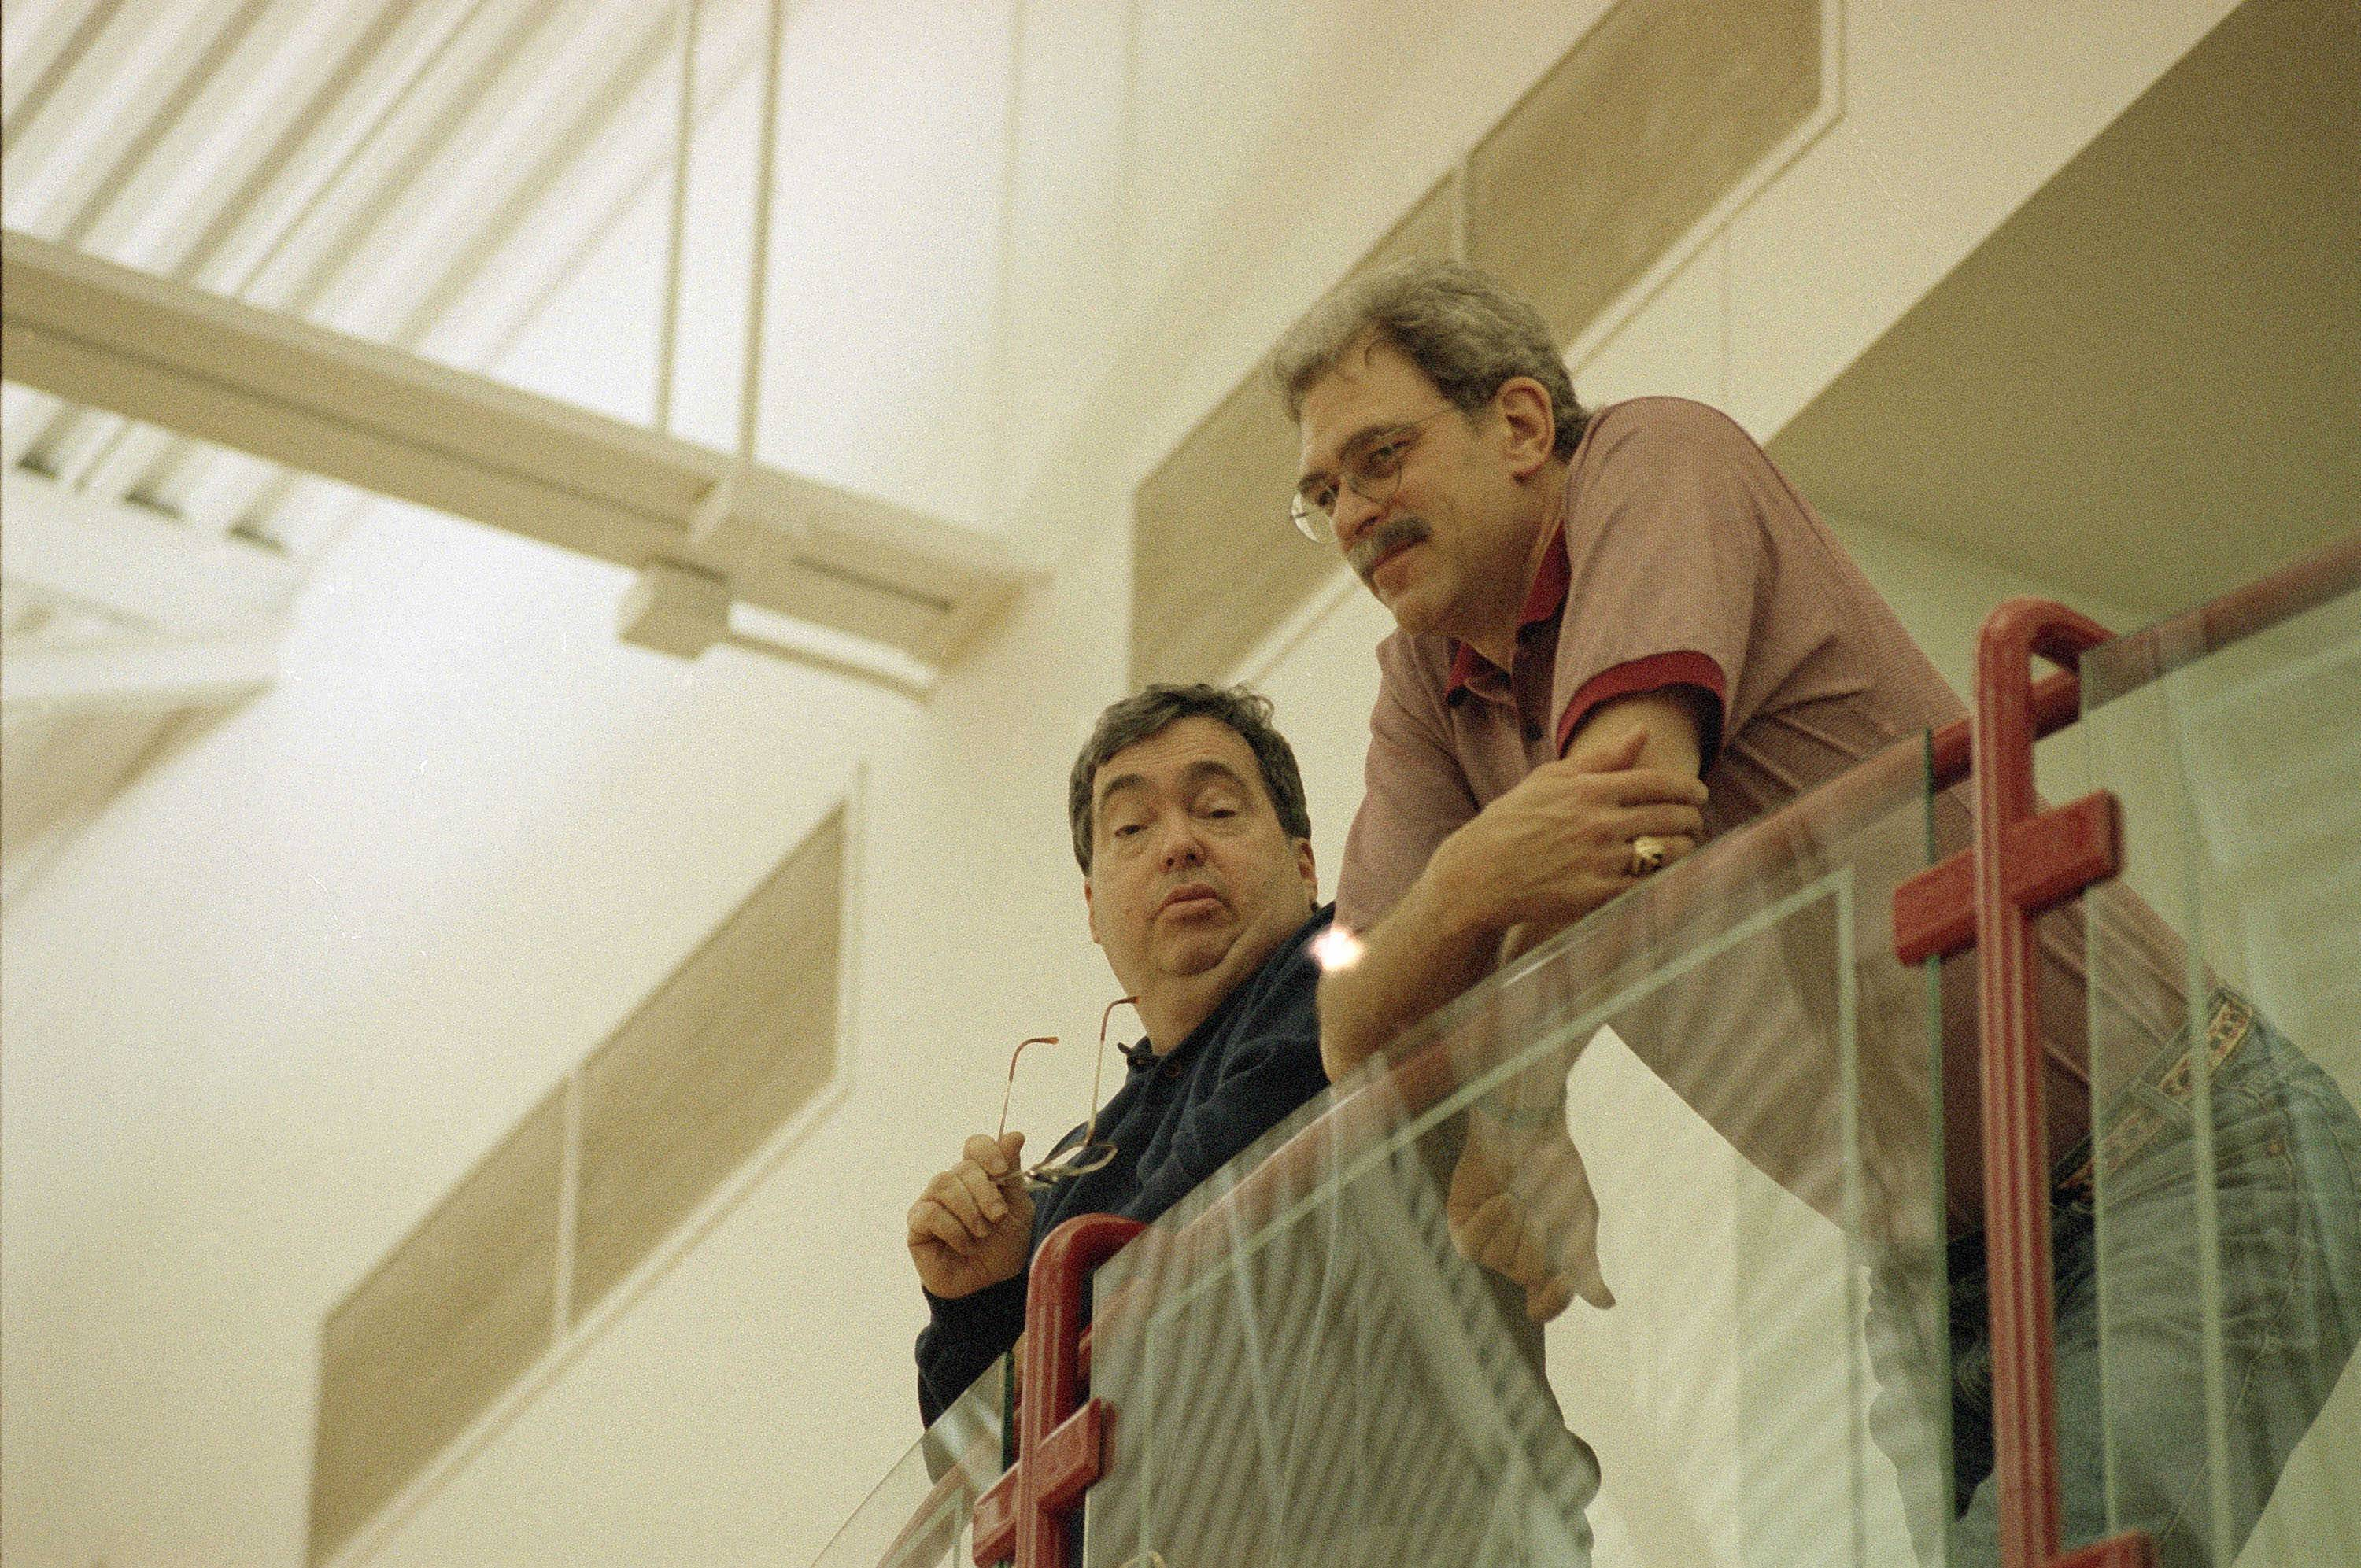 Bulls' coach Phil Jackson and general manager Jerry Krause watch Bulls practice from above at the Berto Center in 1995.